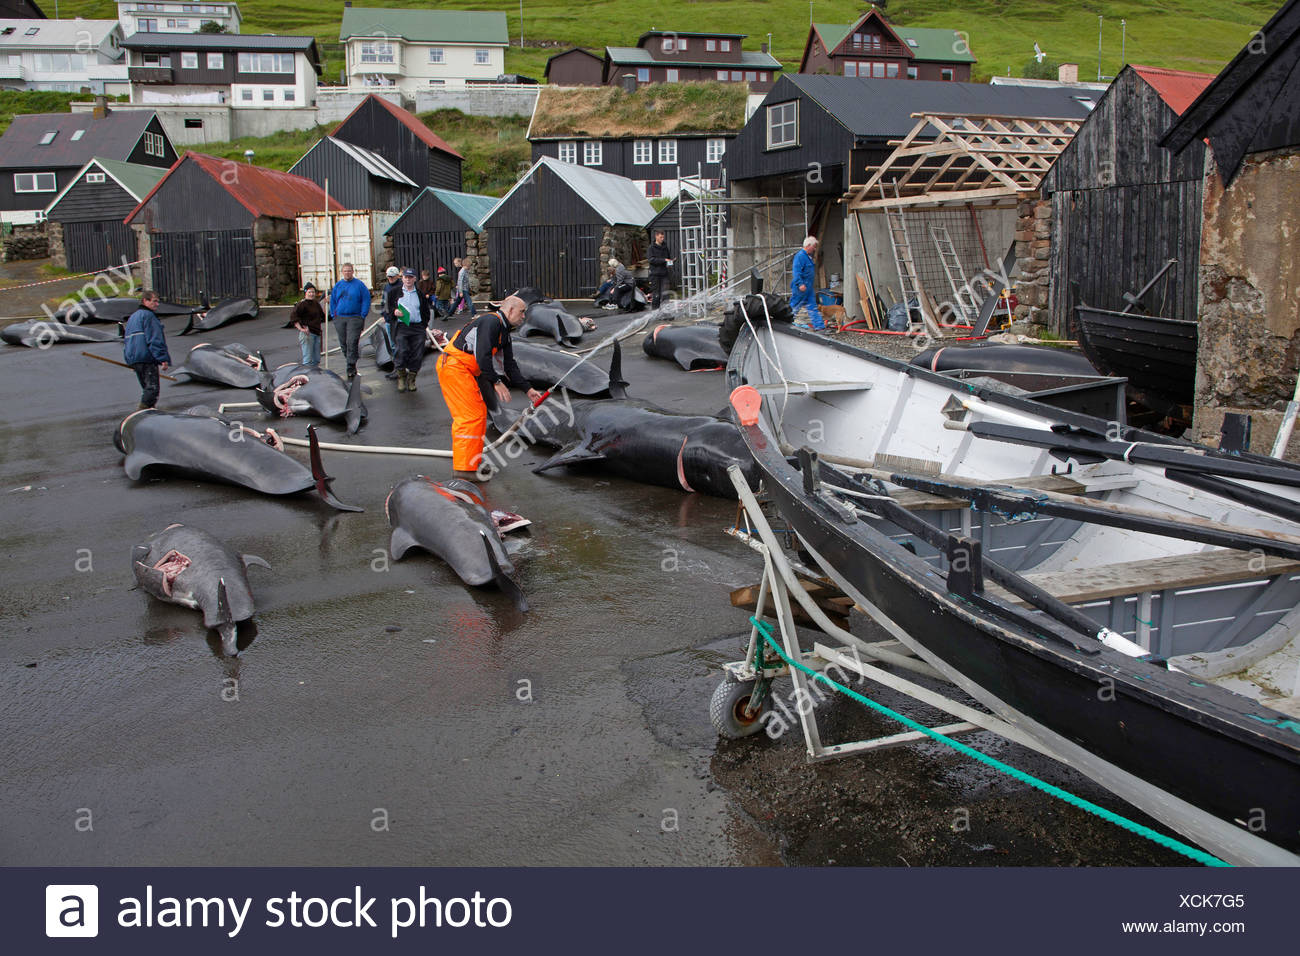 long-finned pilot whale, pothead whale, caaing whale, longfin pilot whale, Atlantic pilot whale, blackfish (Globicephala melas, Globicephala melaena), lots of animals lying on the asphalt ground of a whaling base being carved up, Faroe Islands - Stock Image